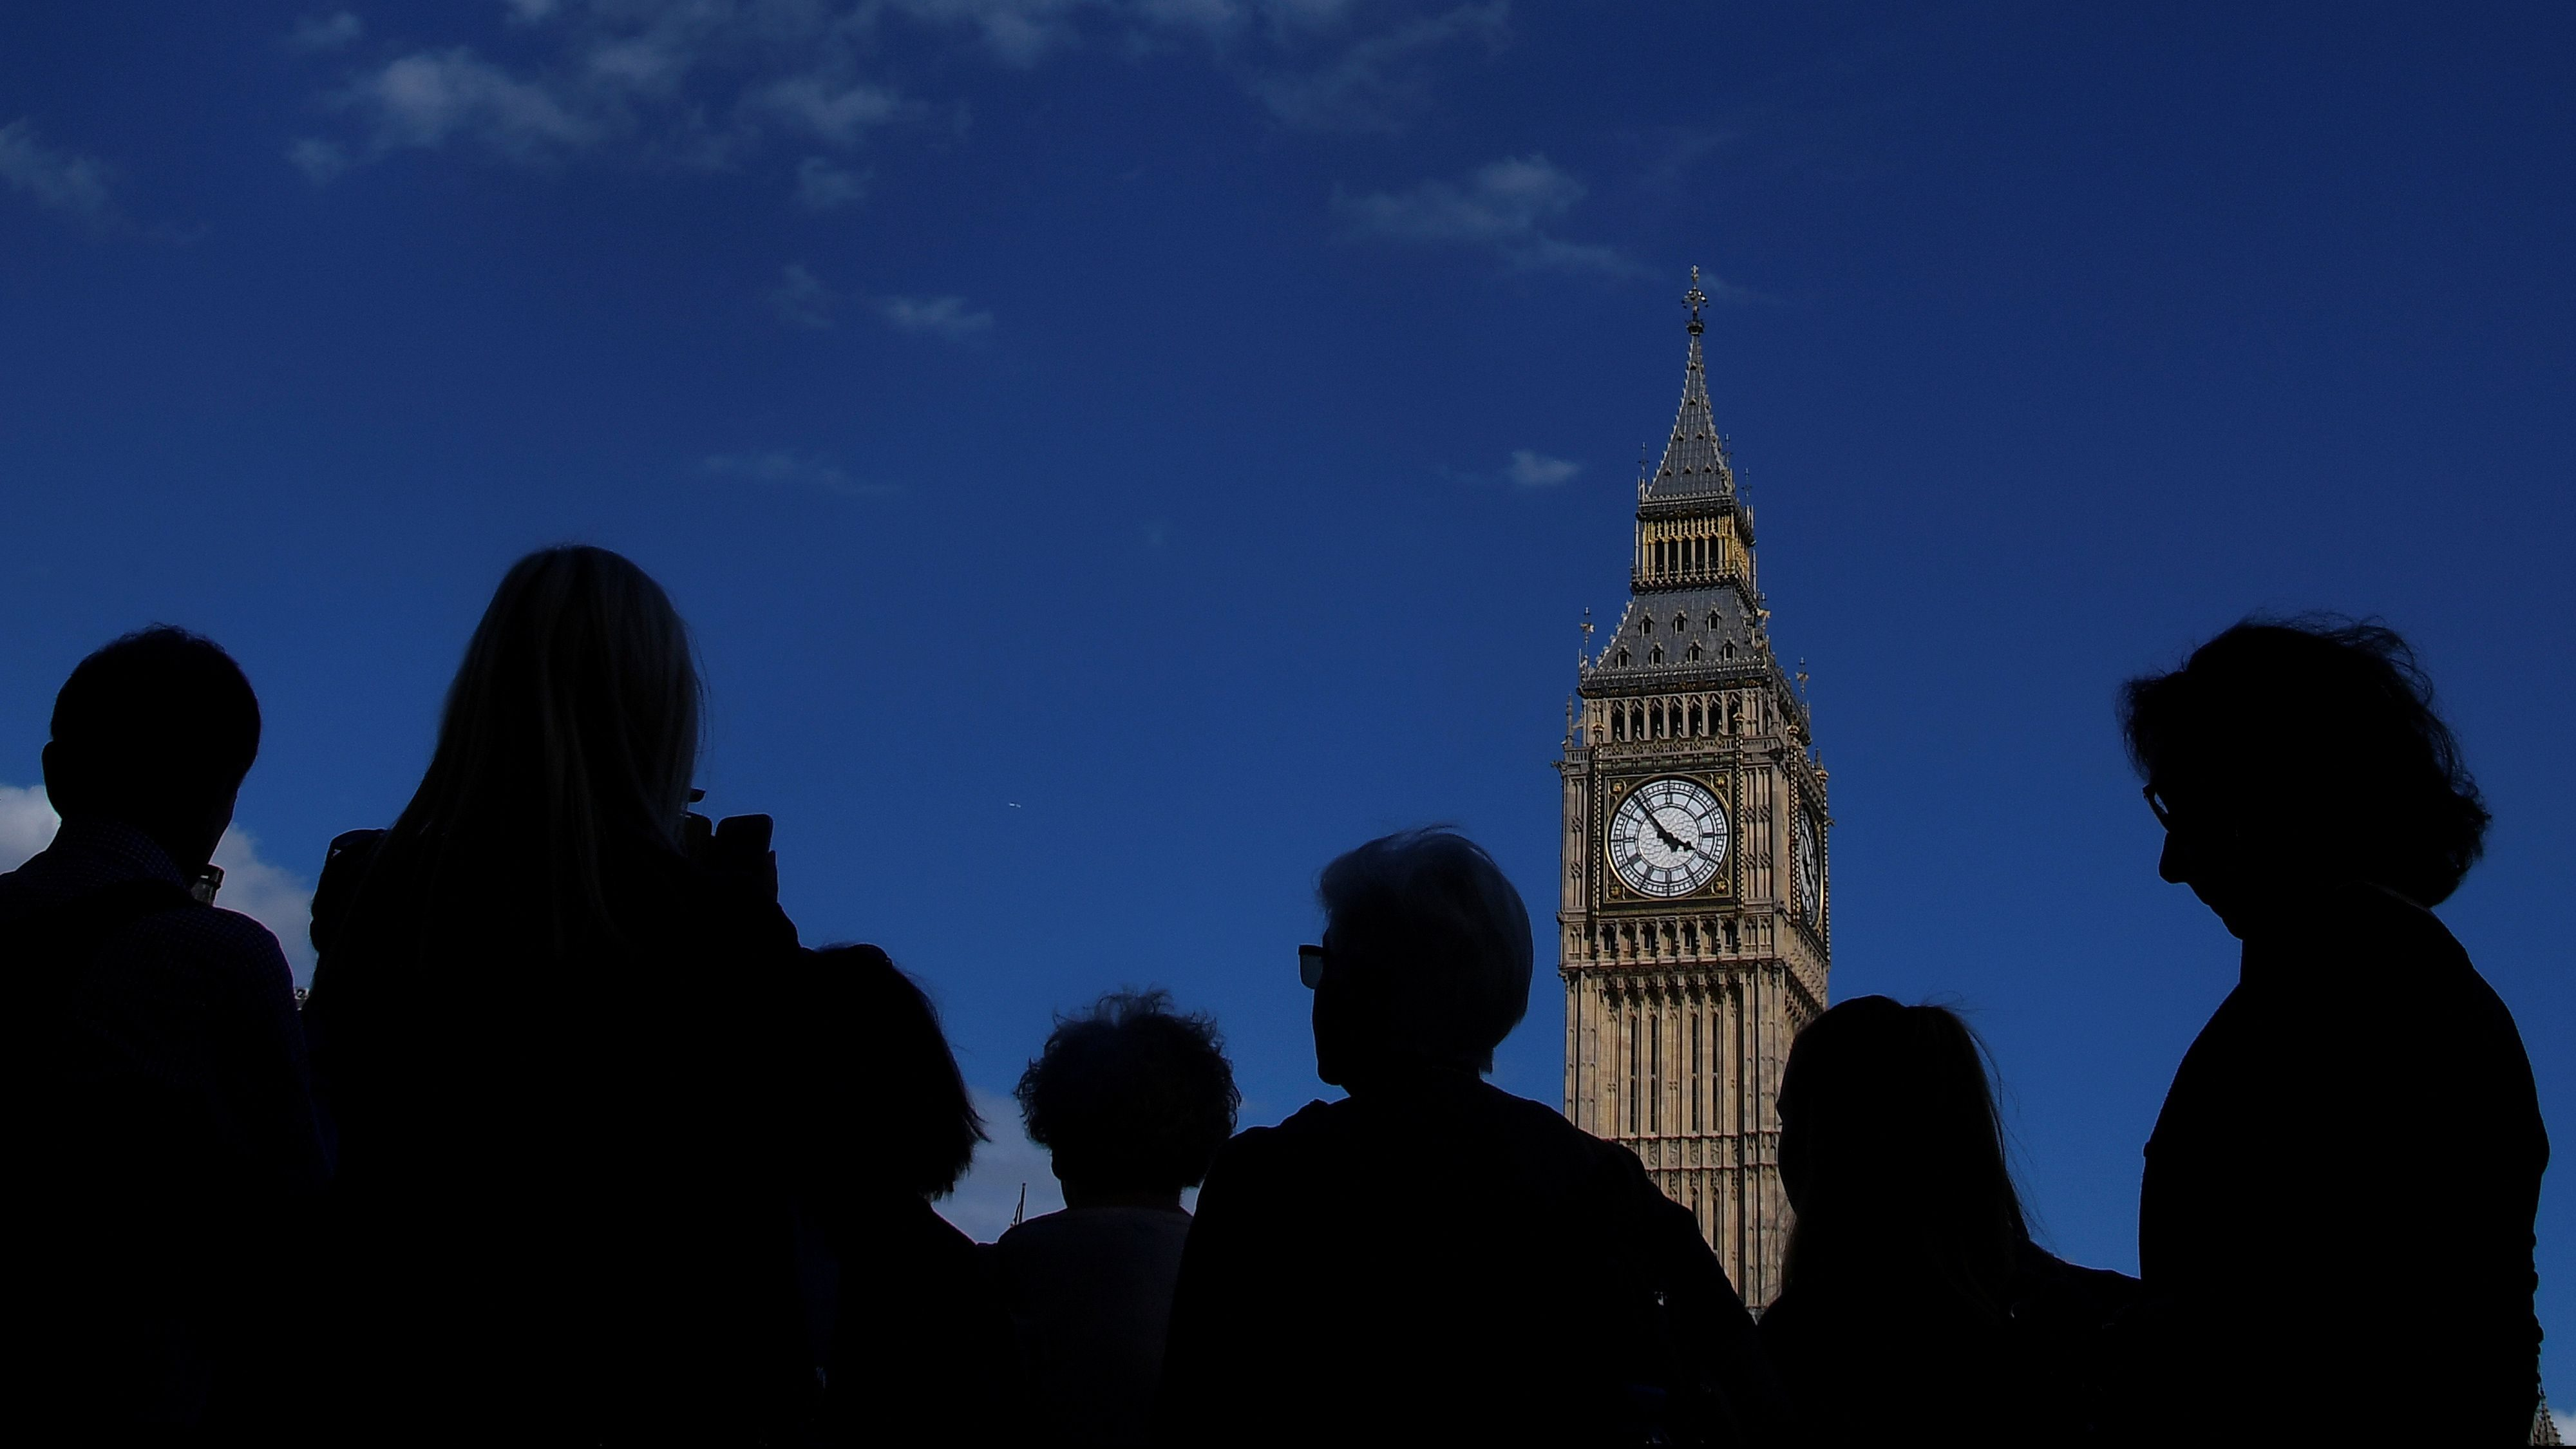 Tourists view the Elizabeth Tower, which houses the Great Clock and the 'Big Ben' bell, at the Houses of Parliament, in central London